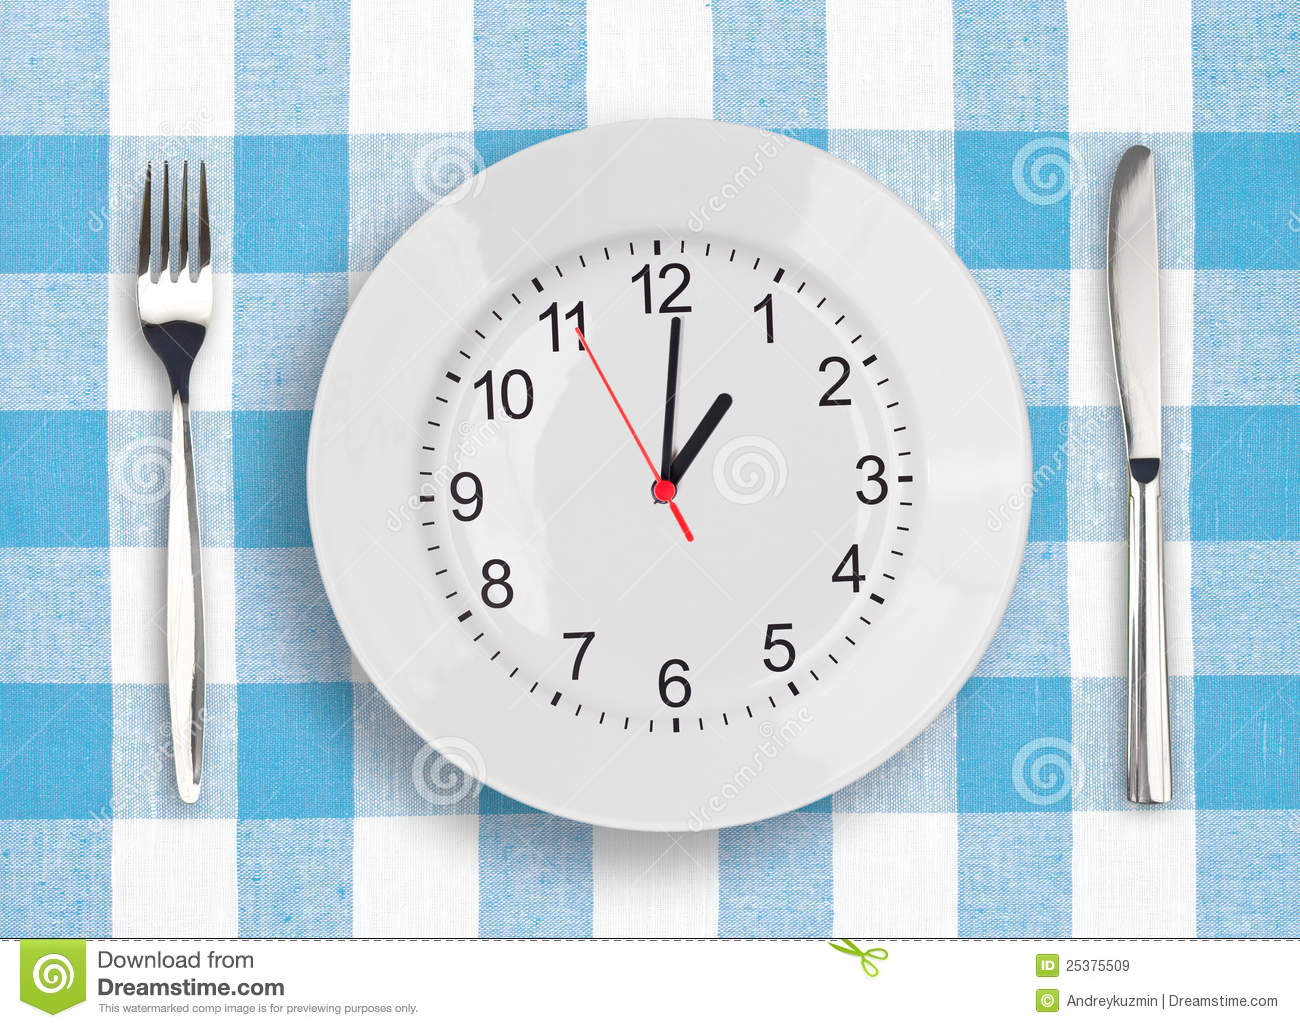 Plate With Clockface Lunch Time Concept Stock Image  : plate clockface lunch time concept 25375509 from www.dreamstime.com size 1300 x 1028 jpeg 234kB